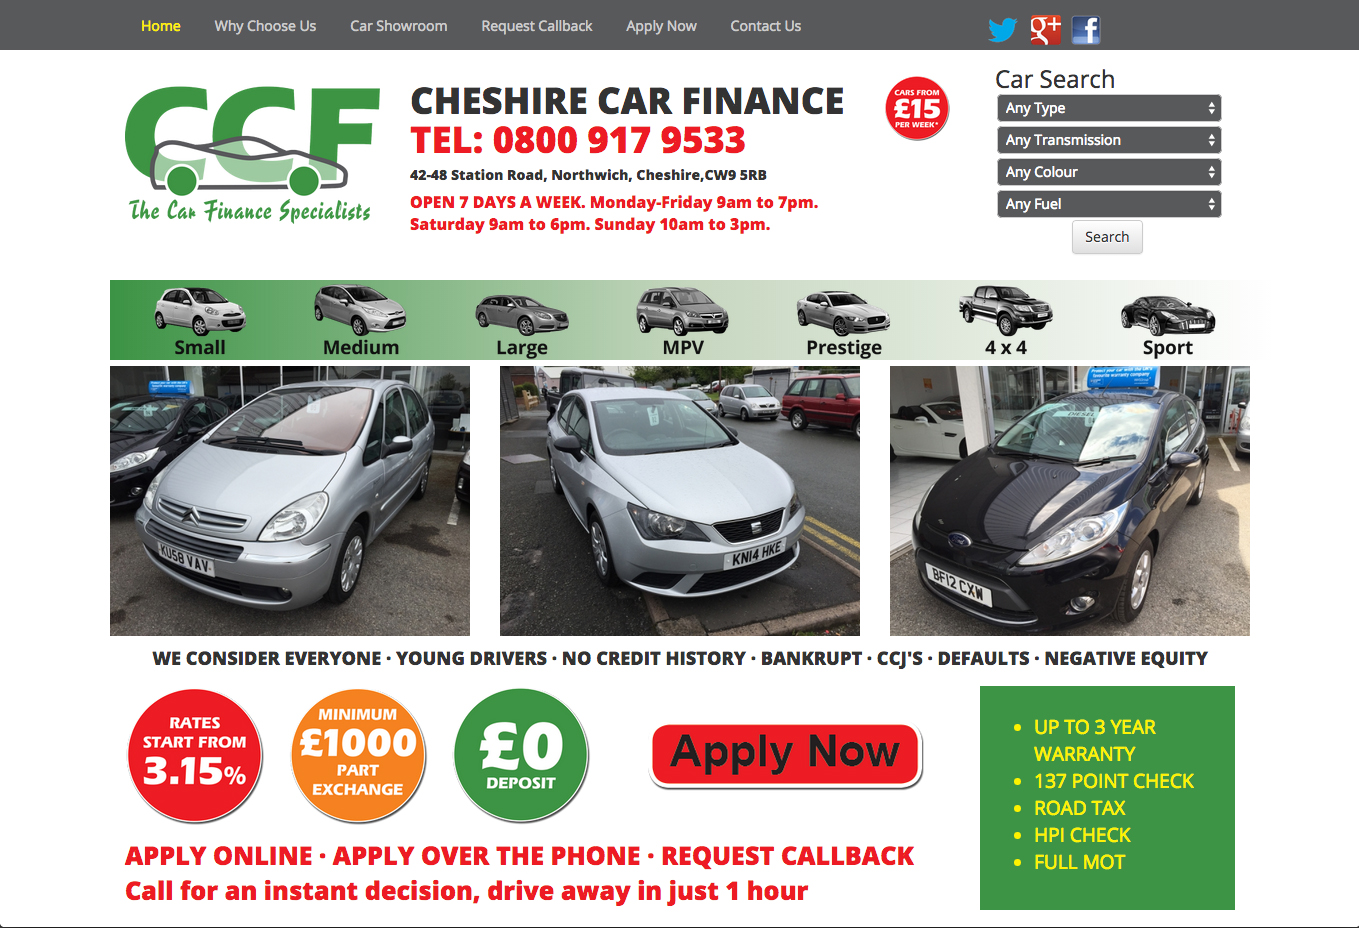 Cheshire Car Finance Website picture